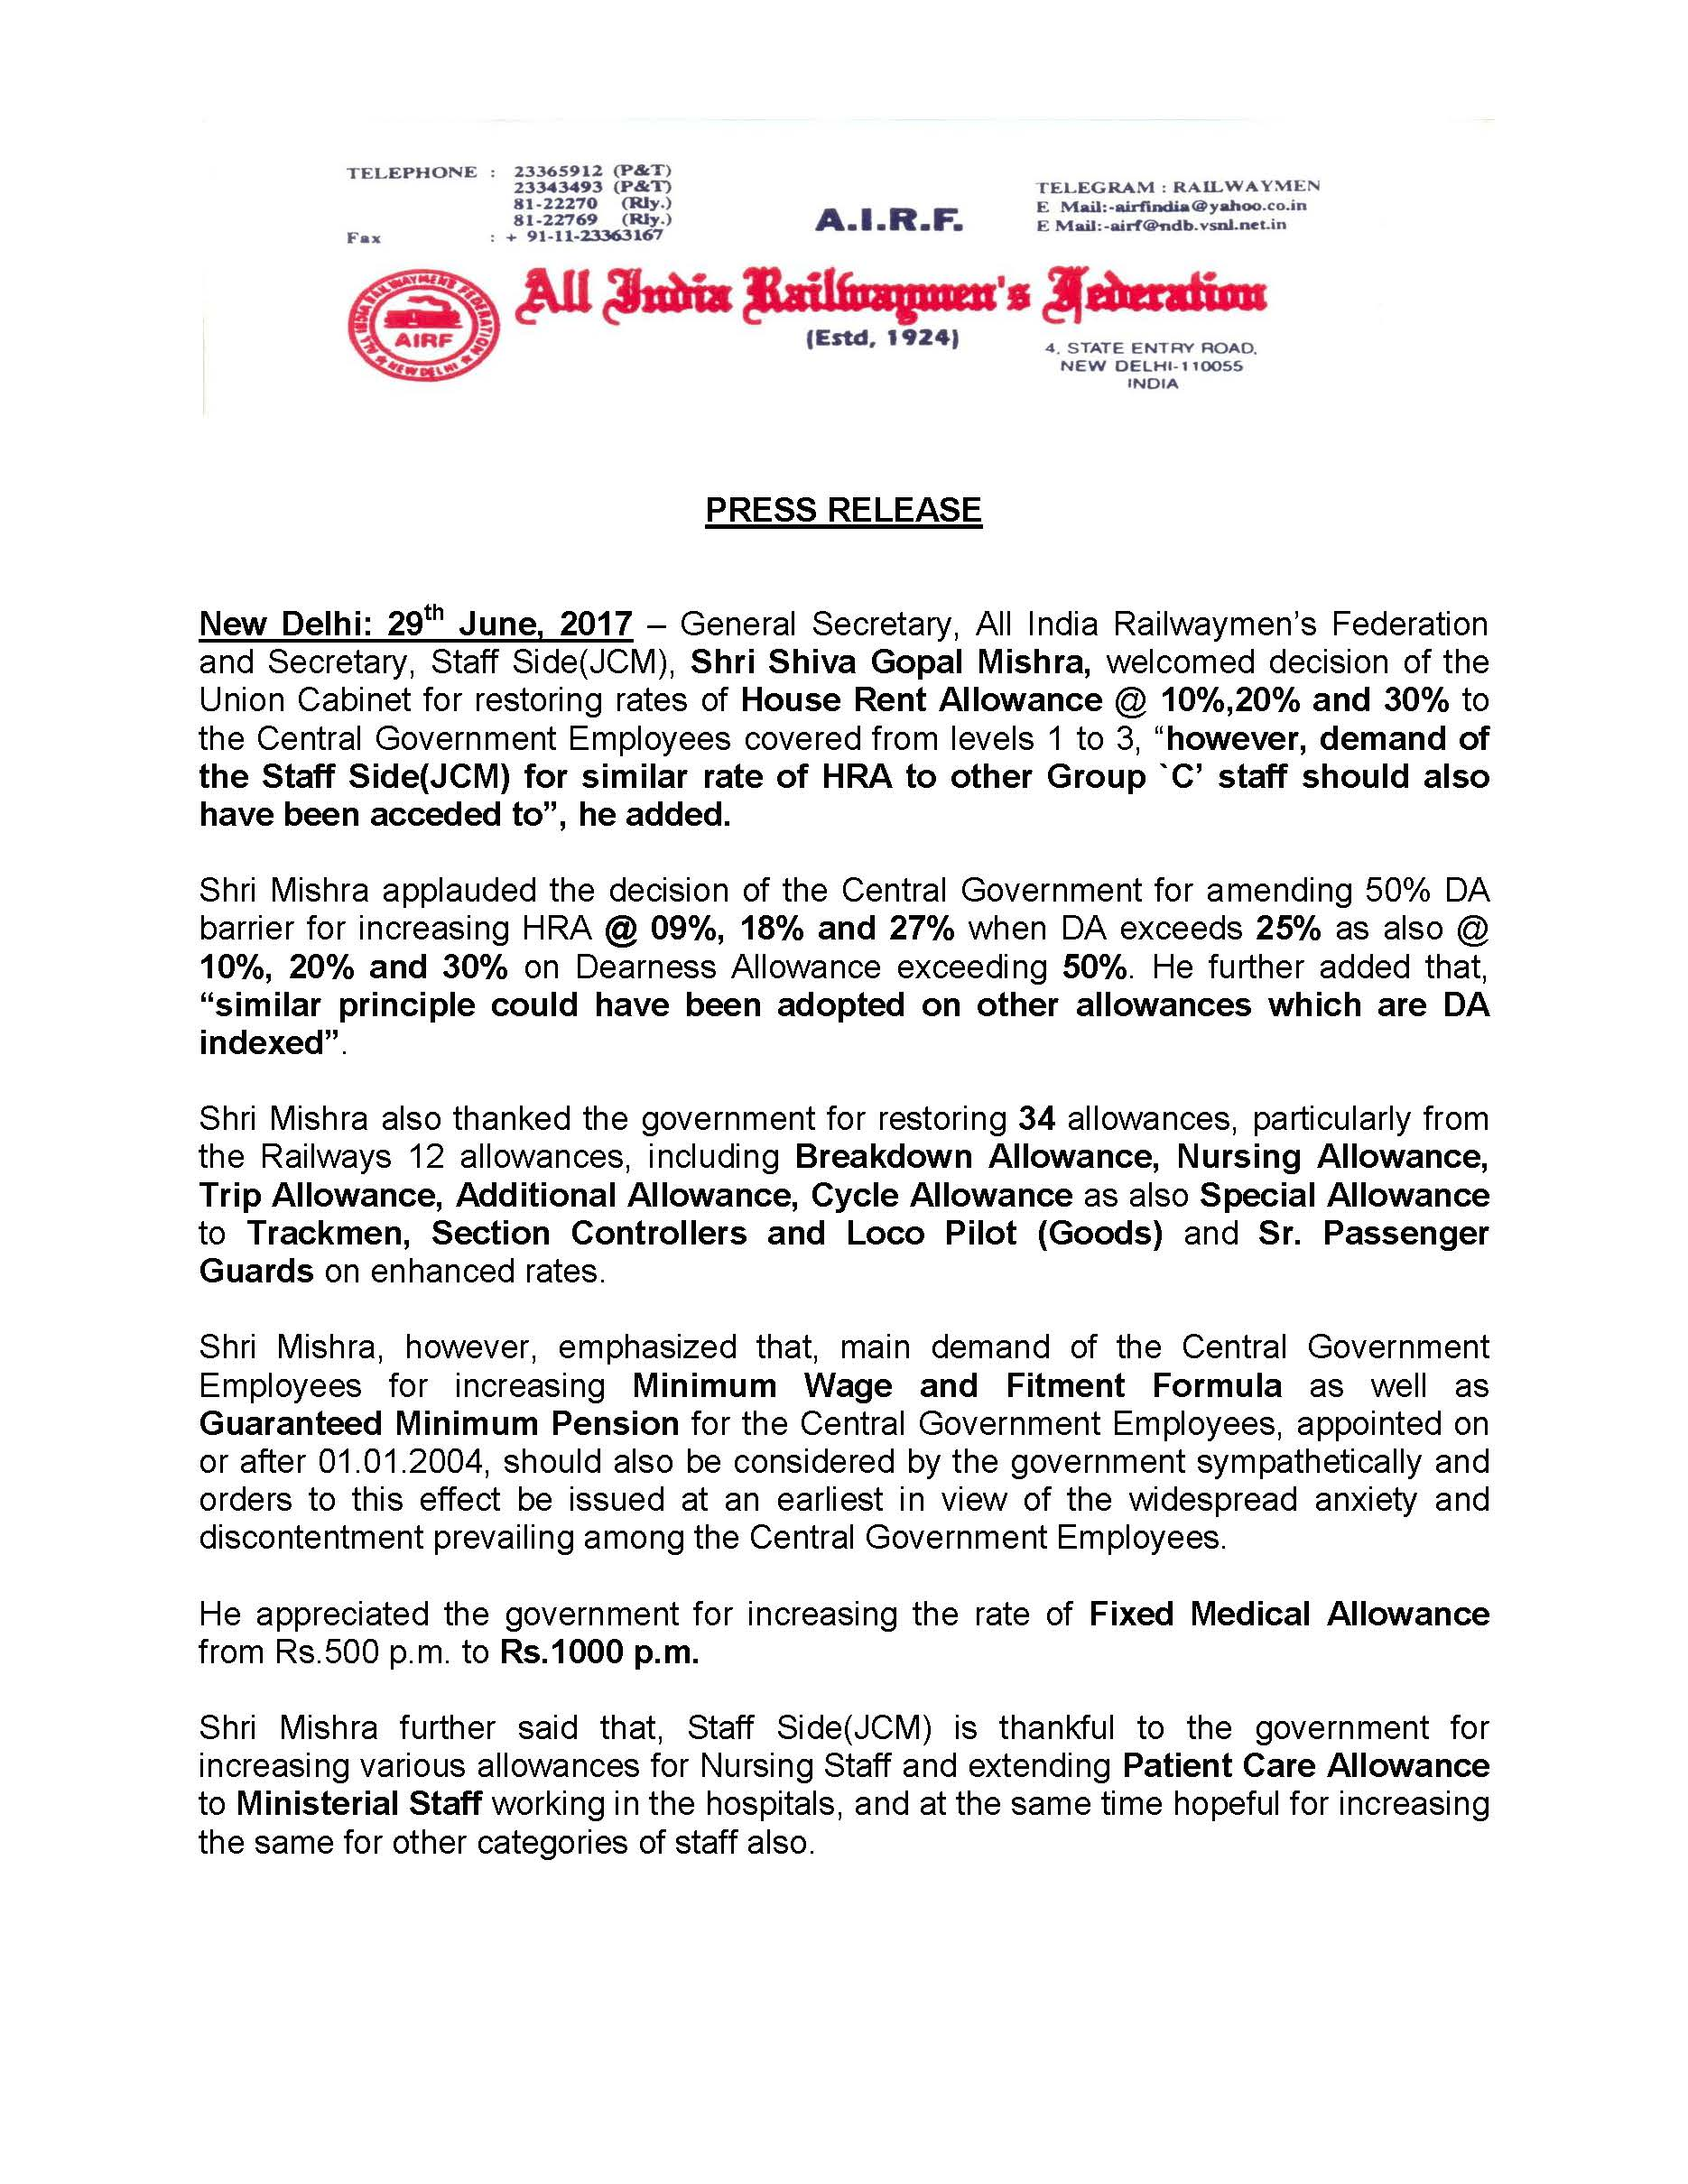 AIRF Press Release